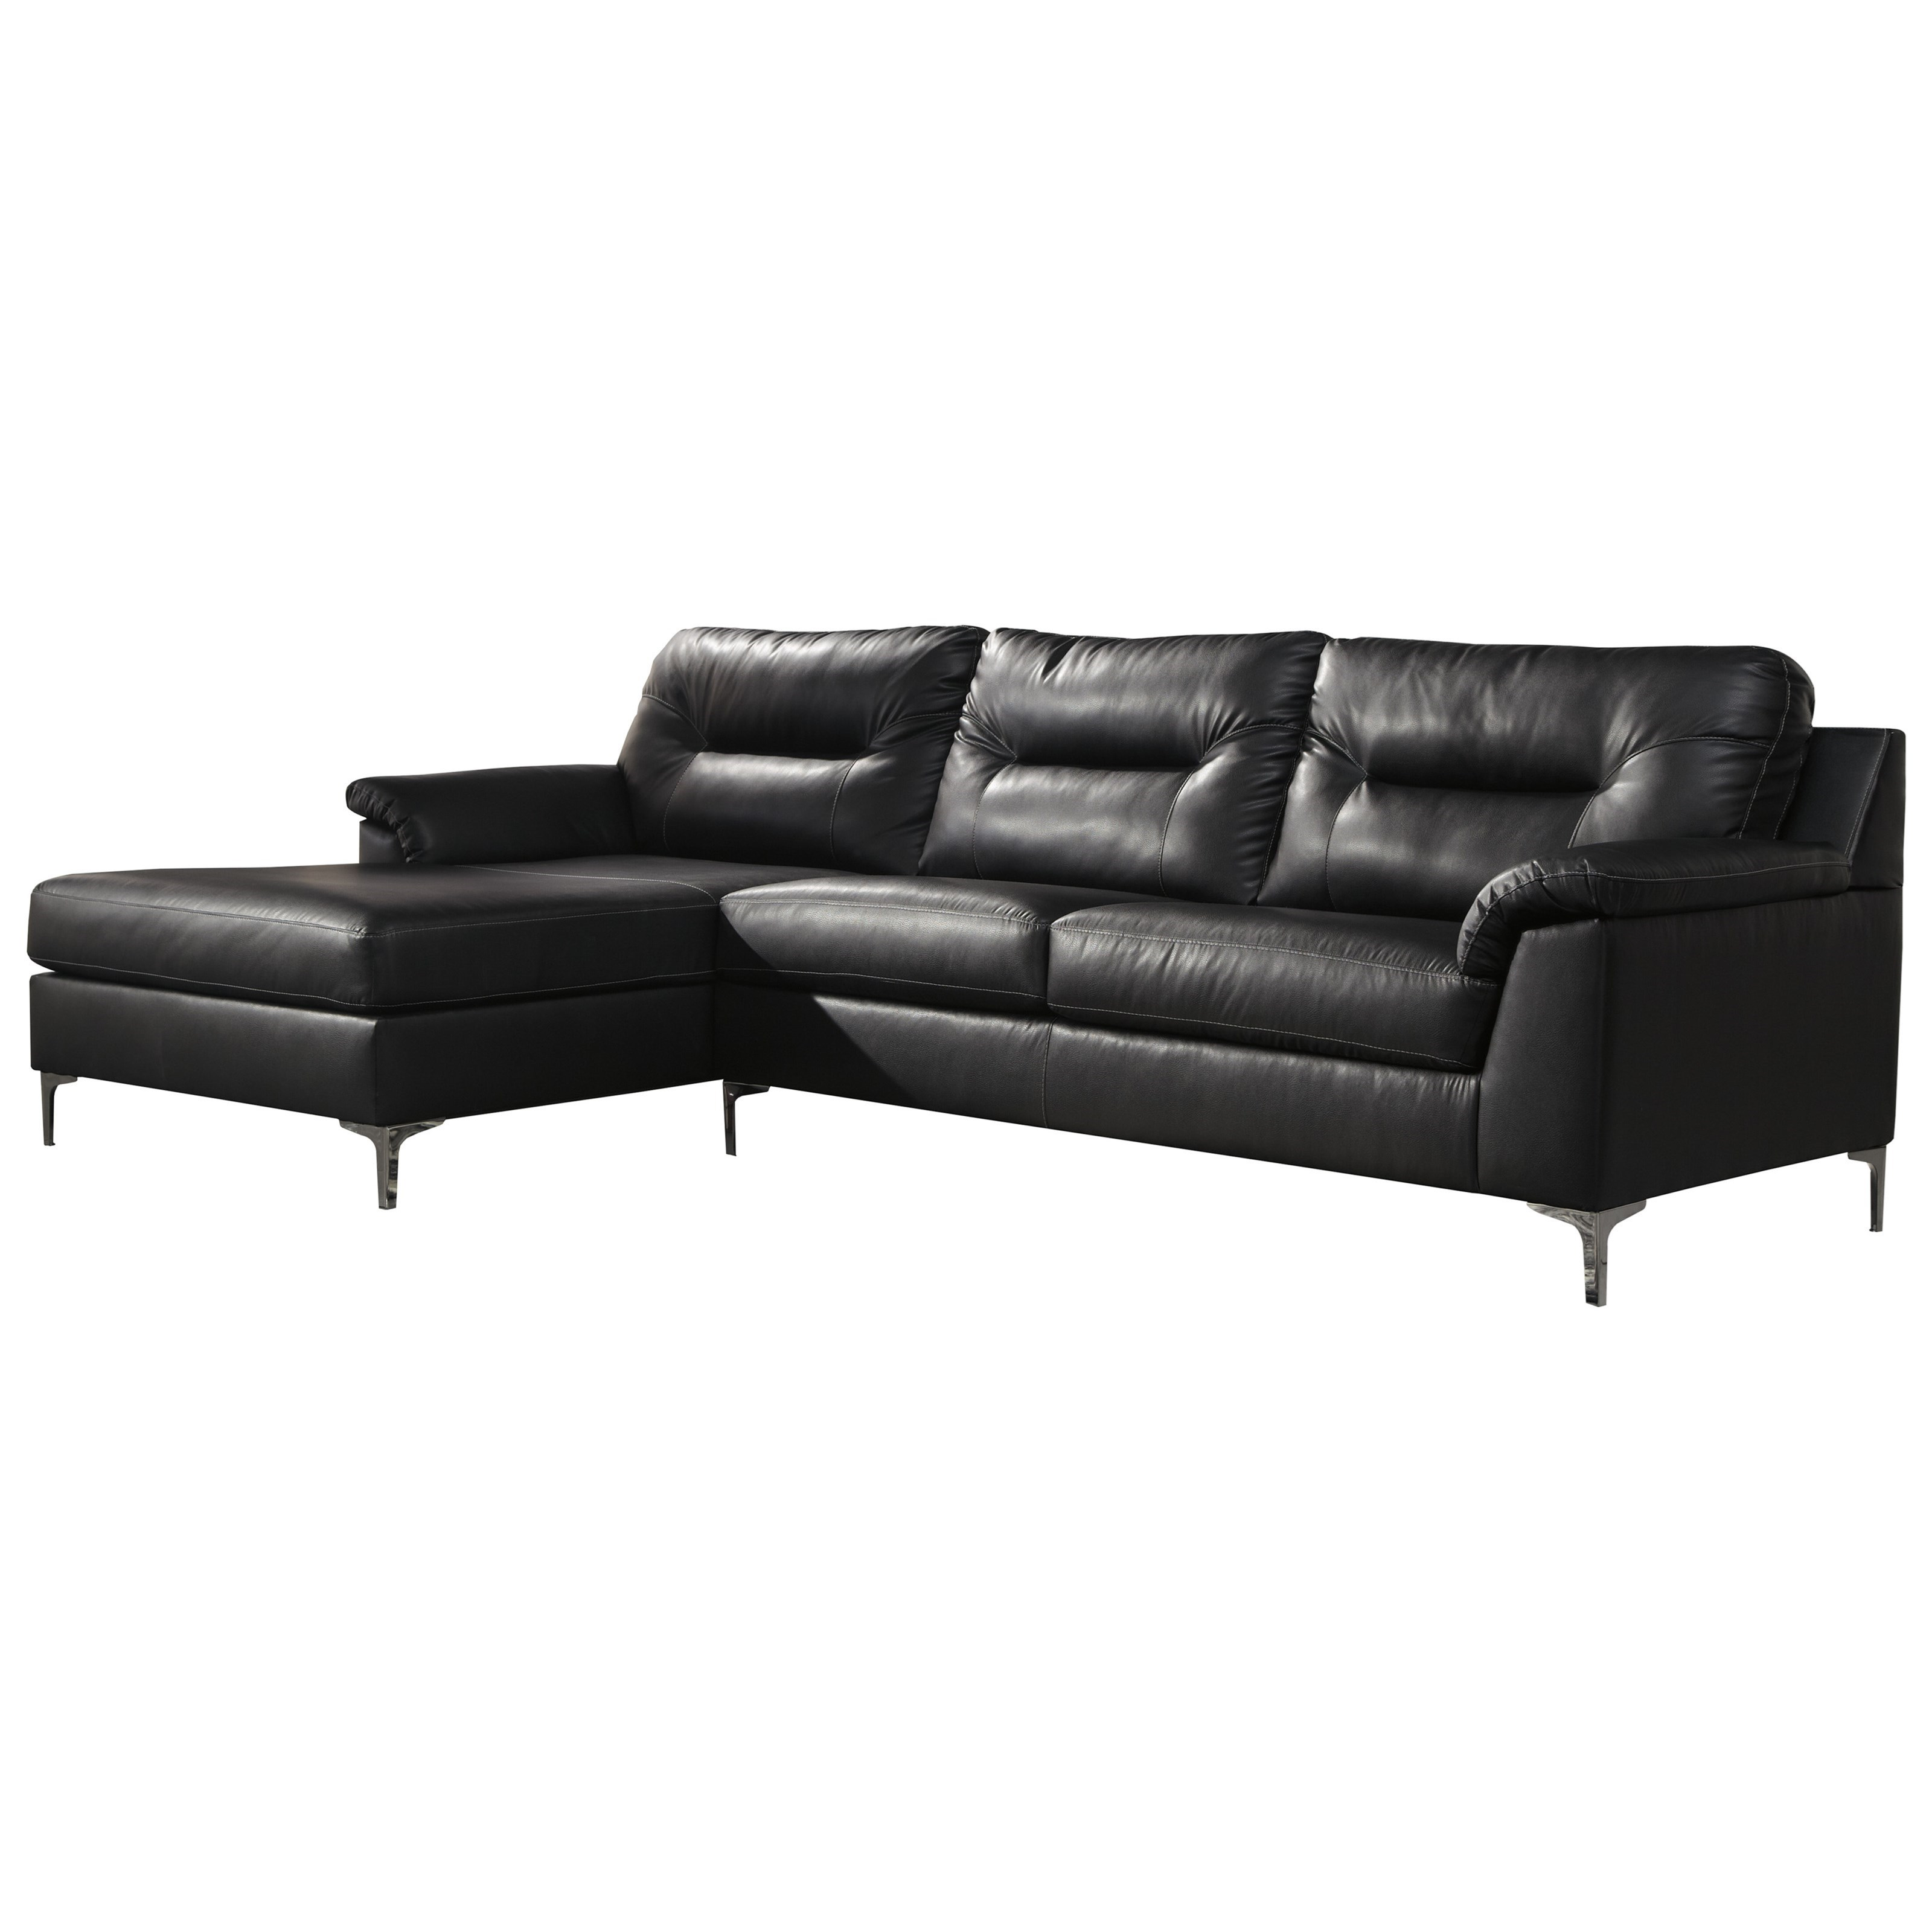 Signature Design by Ashley Tensas Sectional - Item Number: 3960416+67